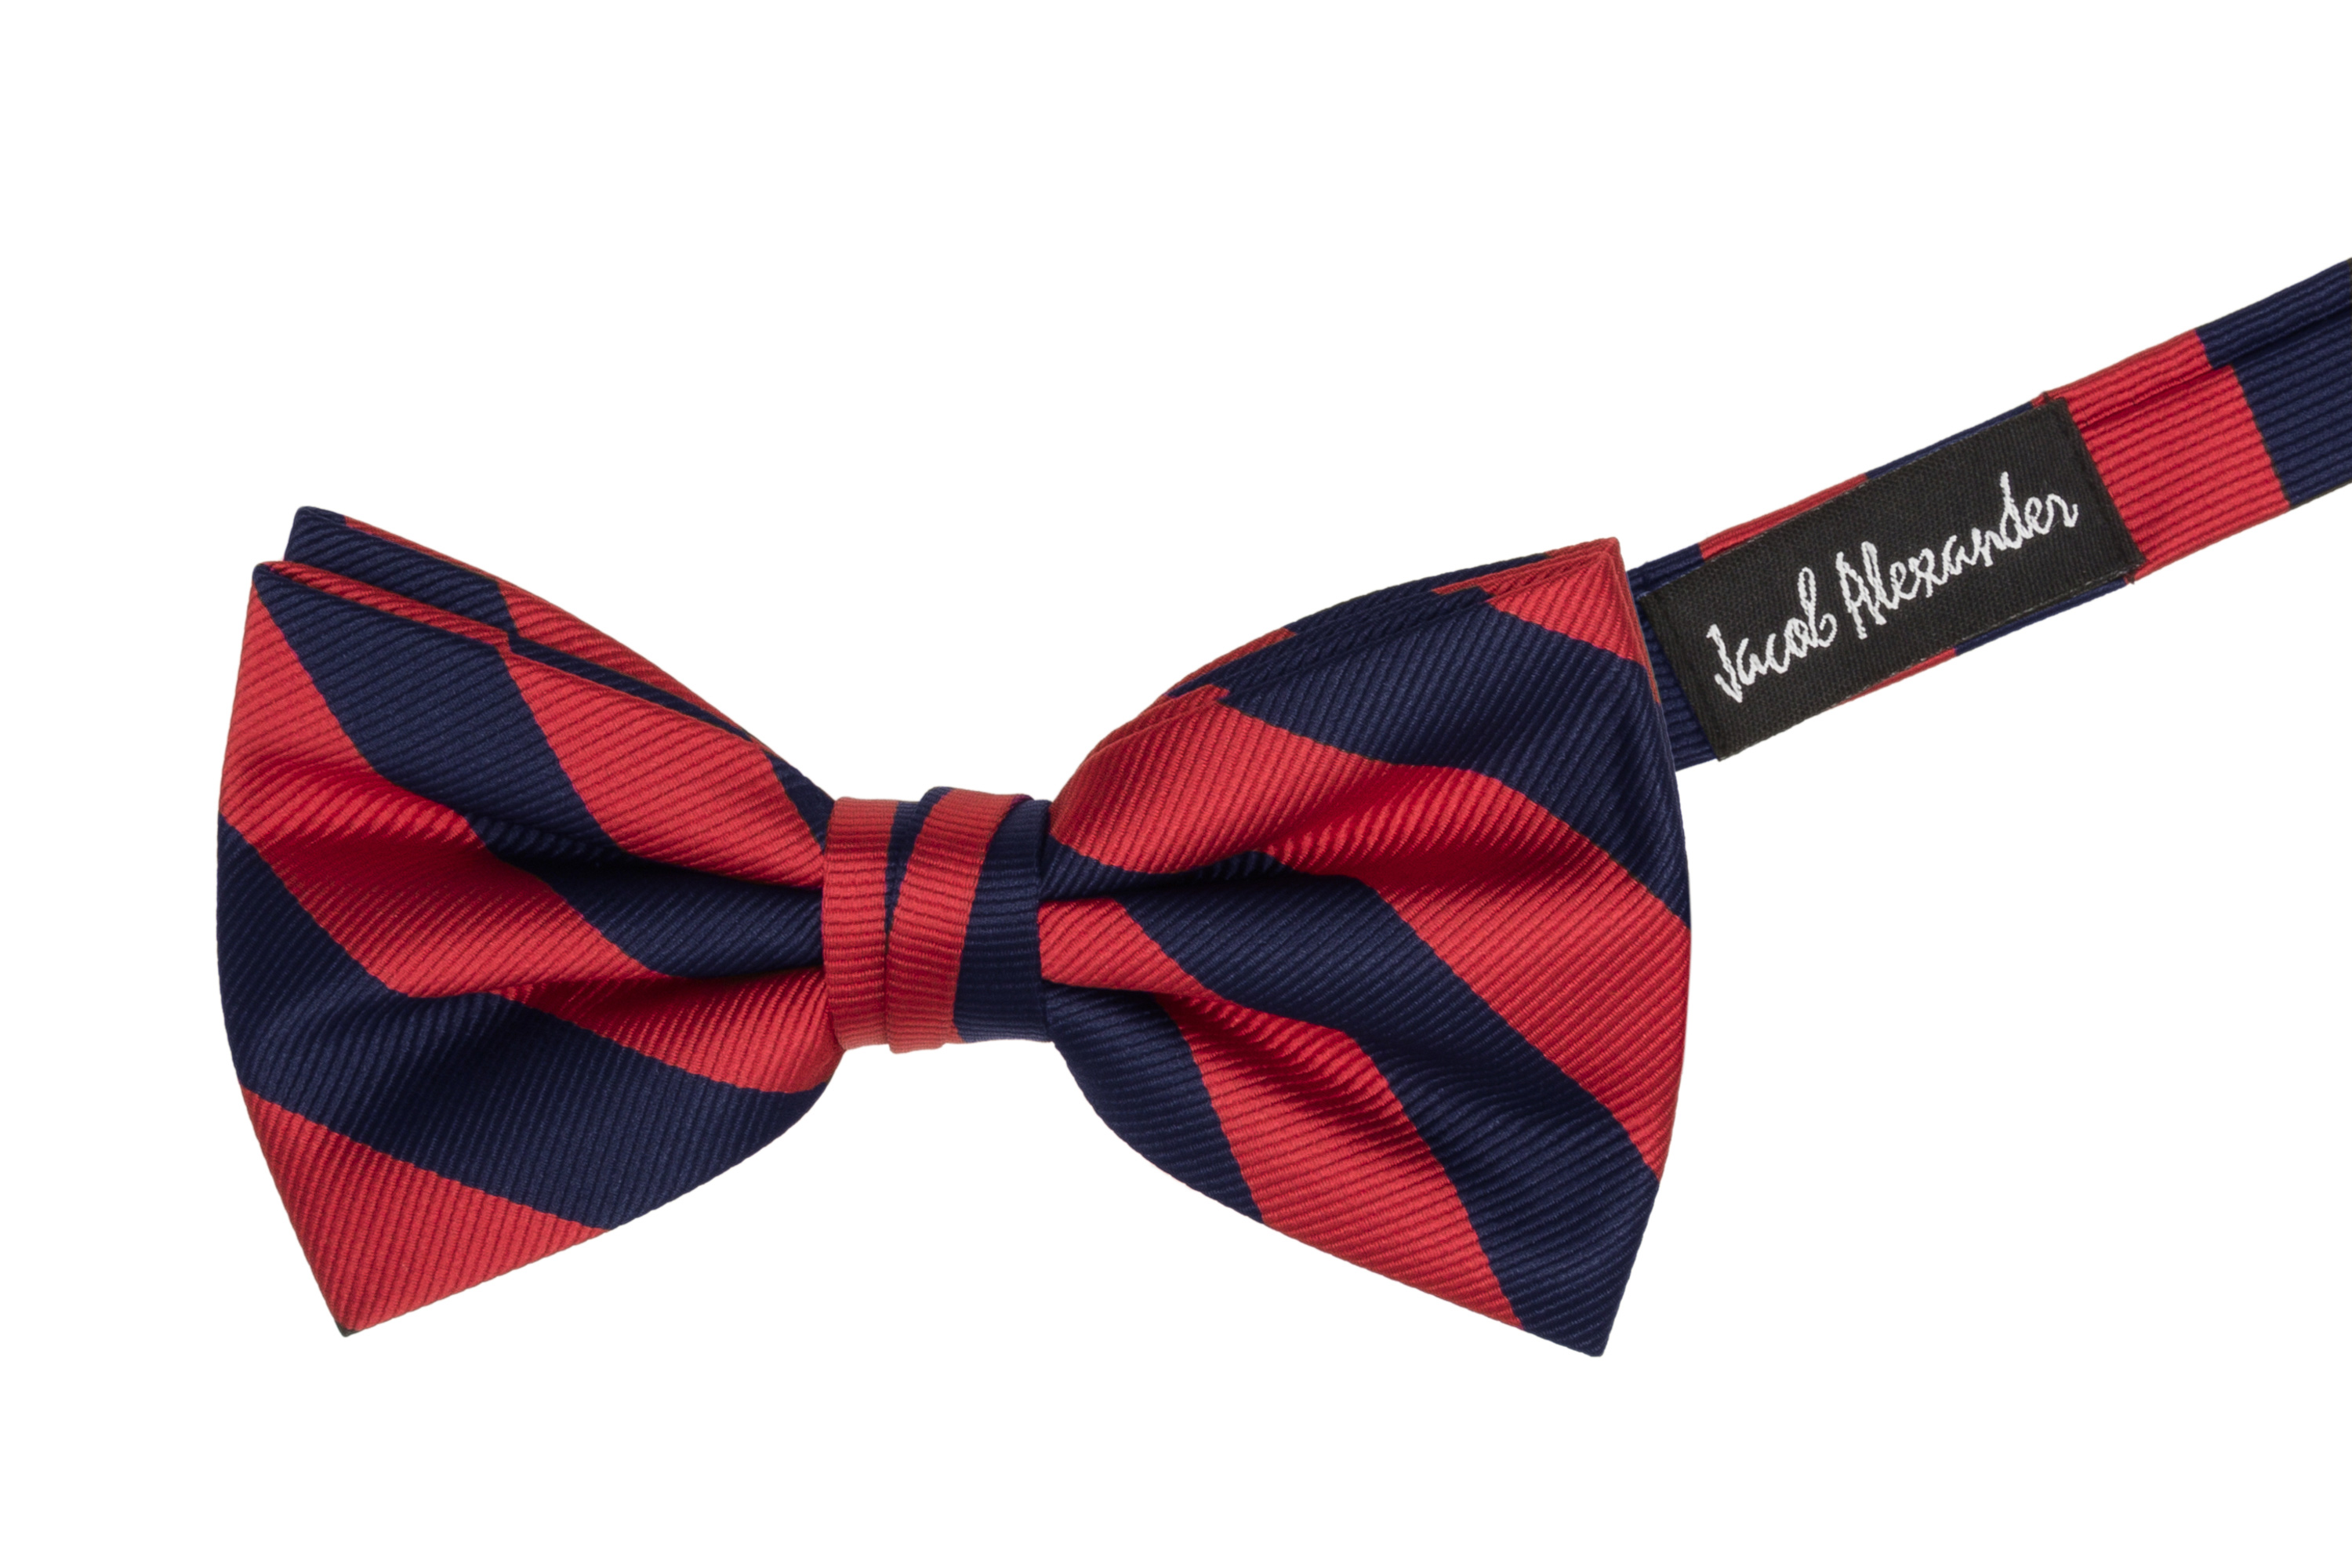 Jacob-Alexander-Stripe-Woven-Men-039-s-College-Striped-Pretied-Bowtie thumbnail 20